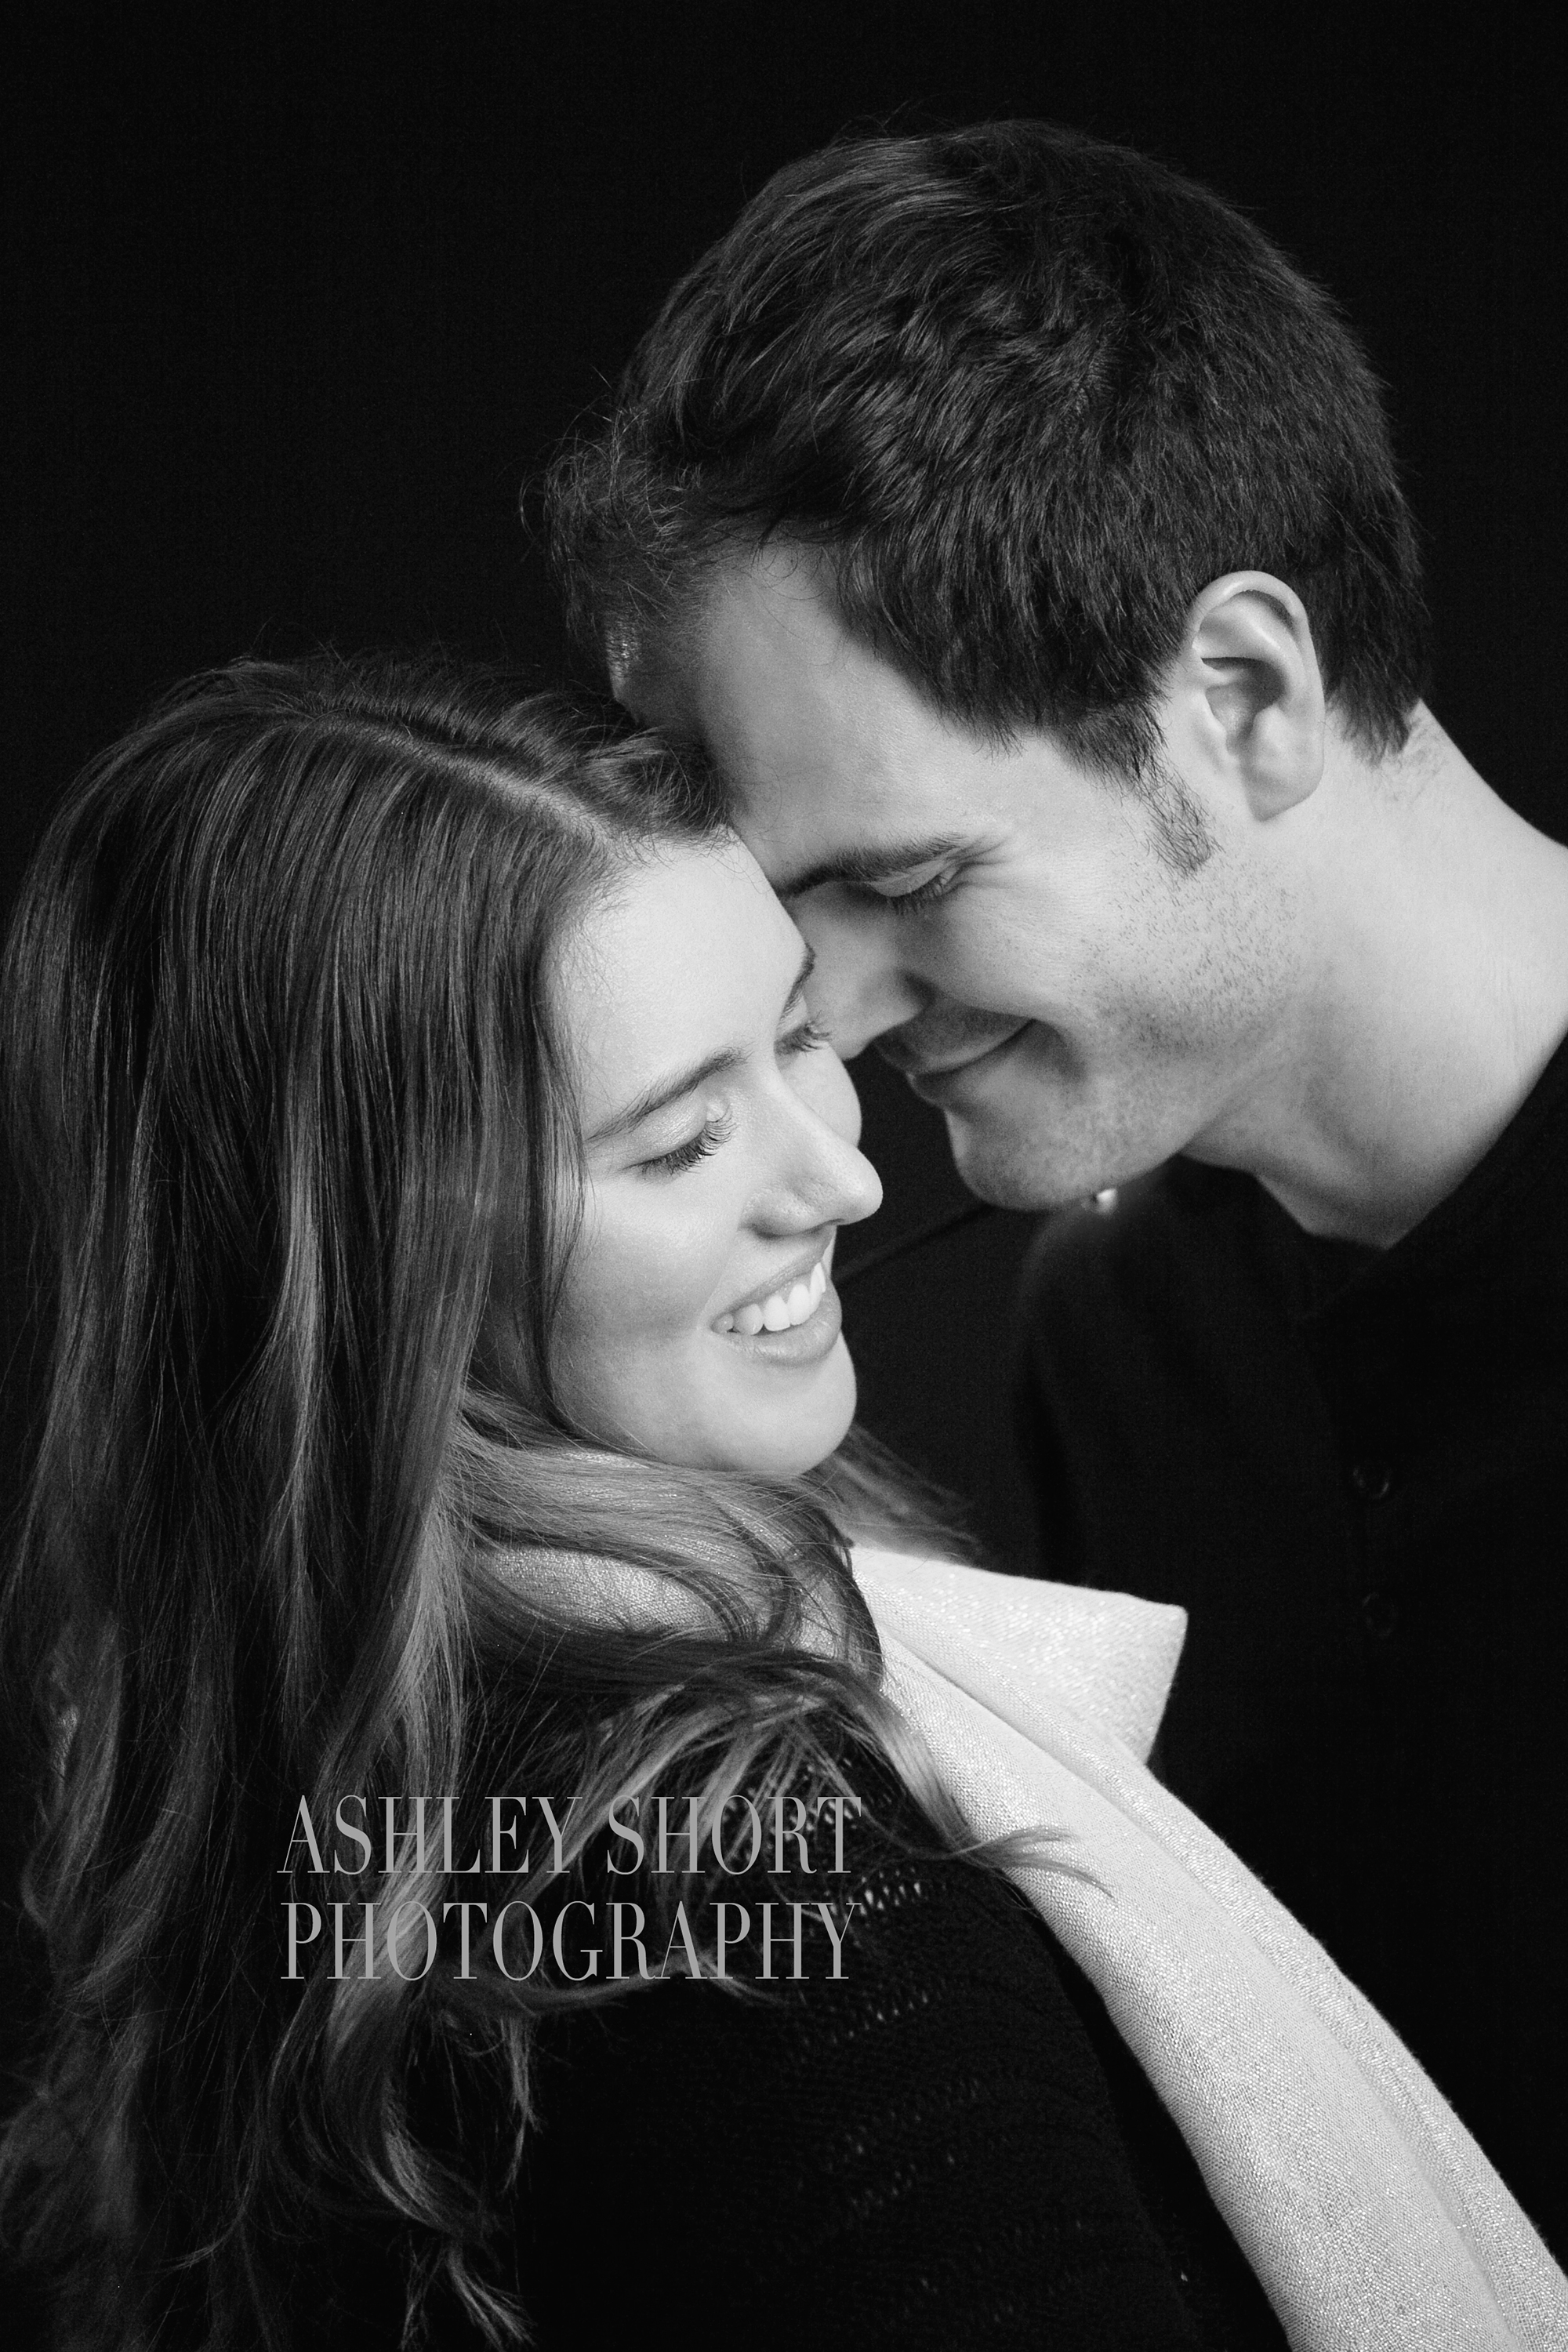 engagement portrait, couples portrait, fun engagement pictures, vintage christmas lights, ashley short photography, toledo ohio photographer, archbold ohio photographer, in love, black and white portrait